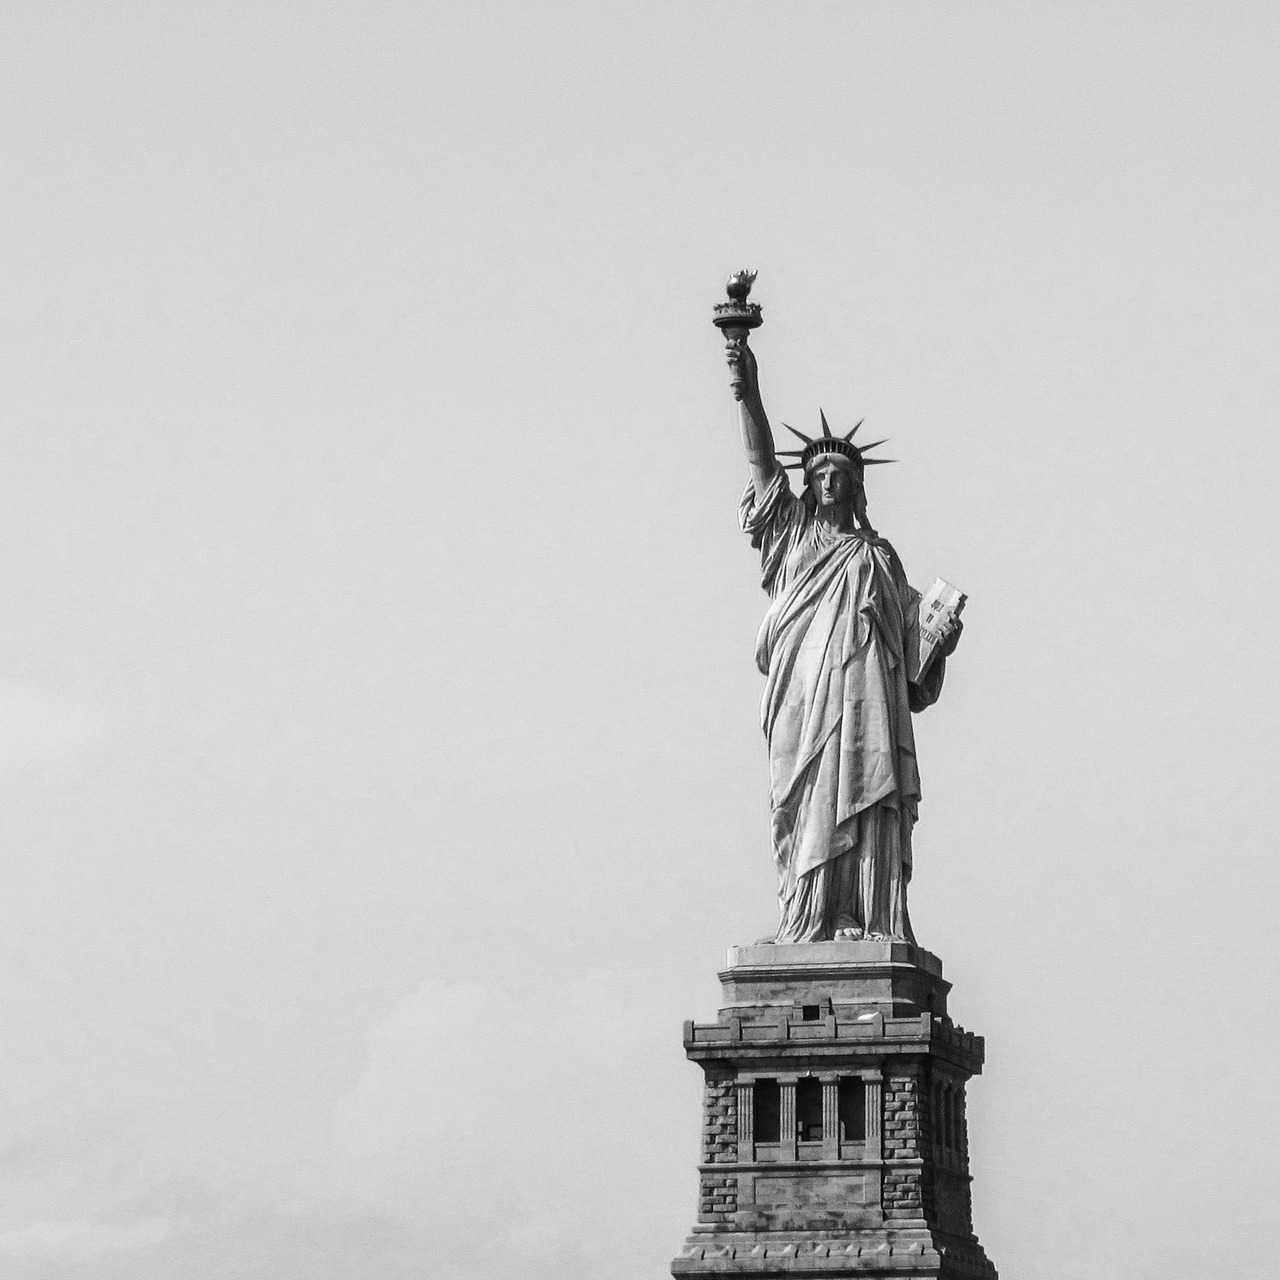 270 - Liberty   #366project